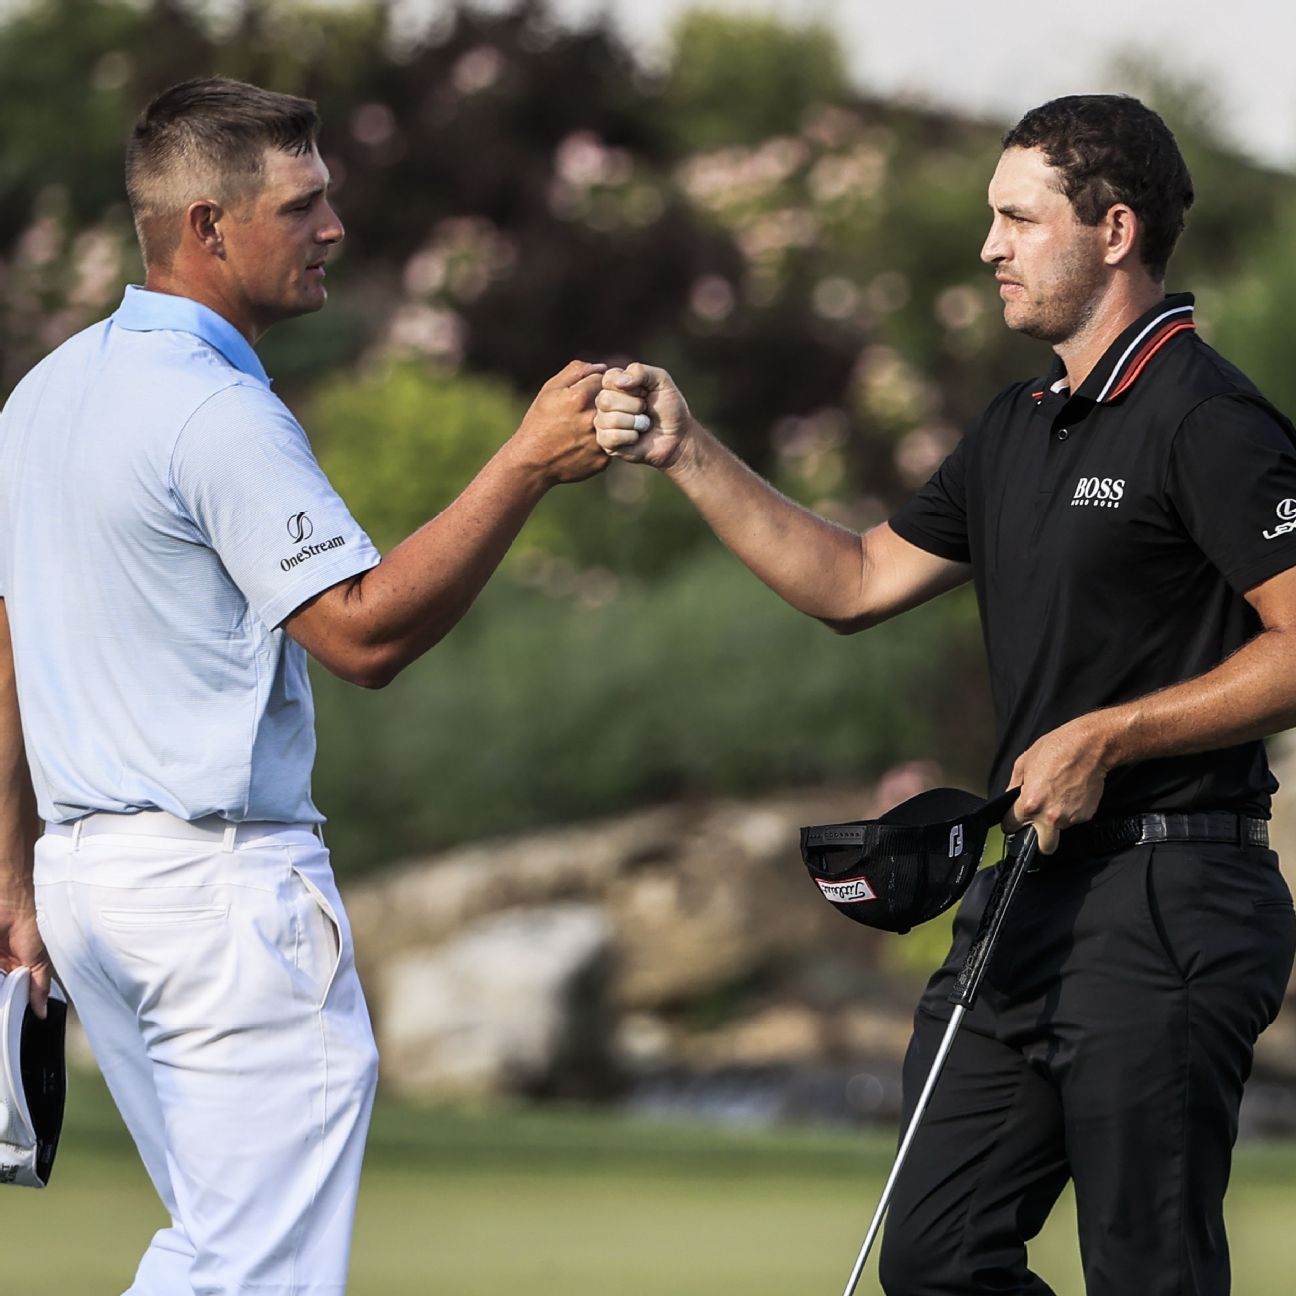 Should the PGA Tour's FedEx Cup playoffs really be this easy?